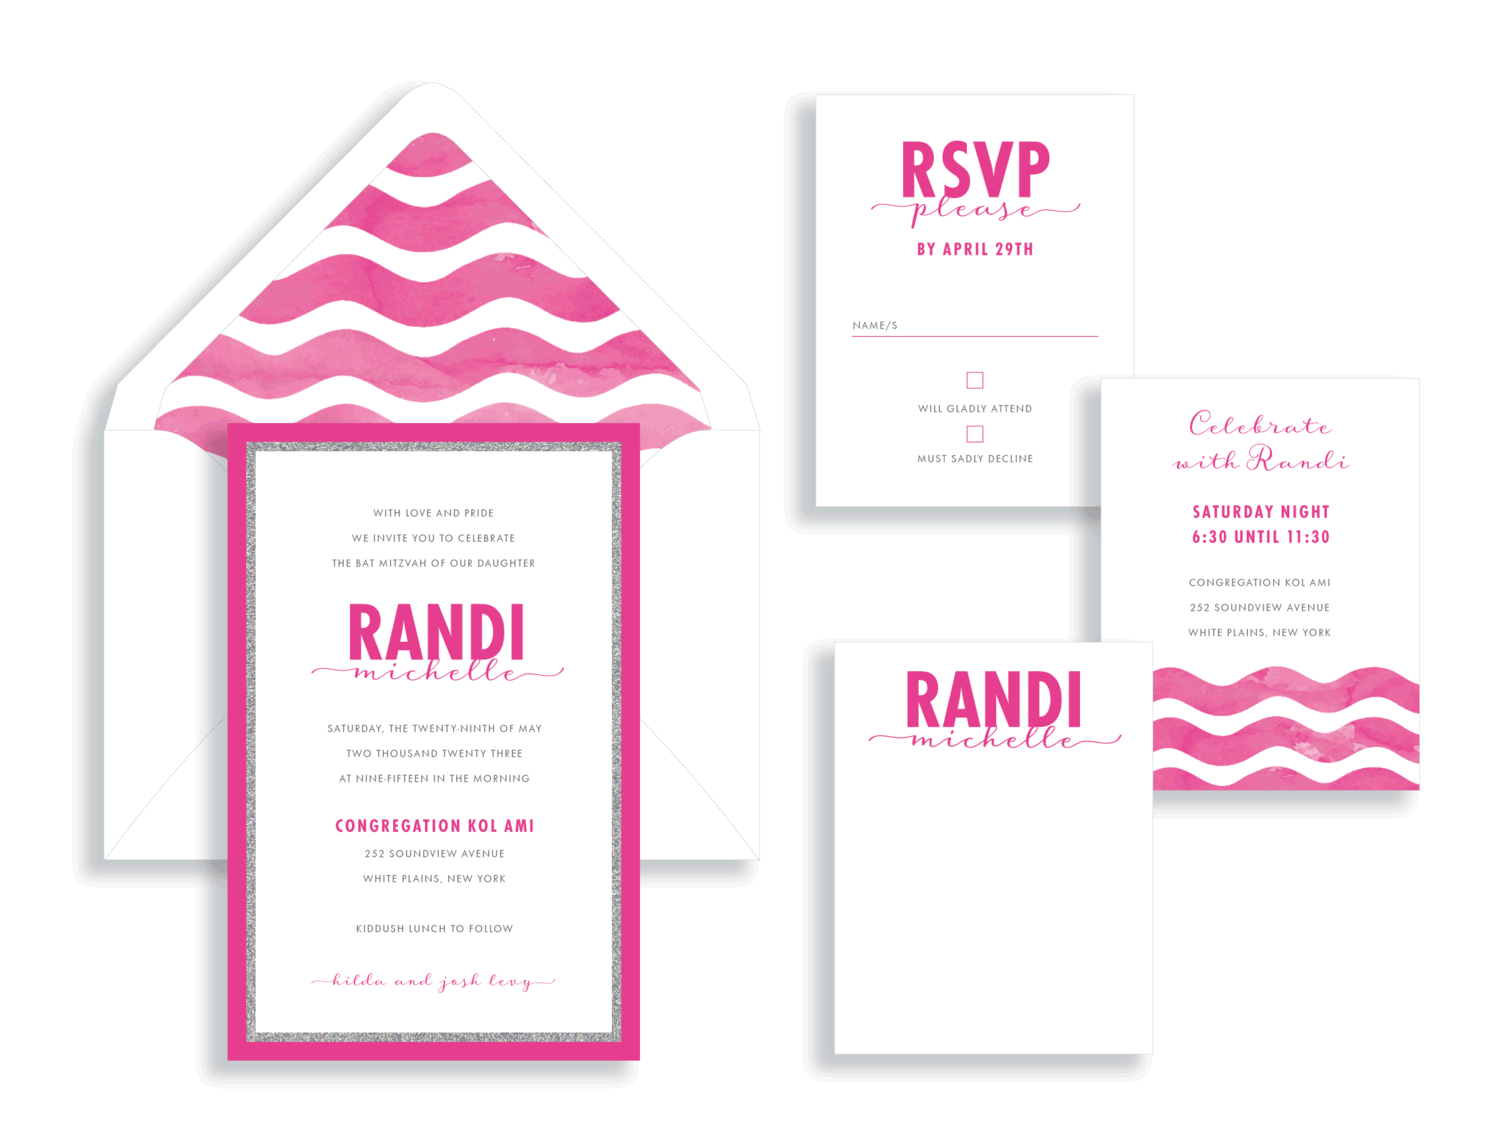 Randi bat mitzvah magenta and silver glitter invitation in Fairfax Virginia from Staccato with personalized service, great selection!